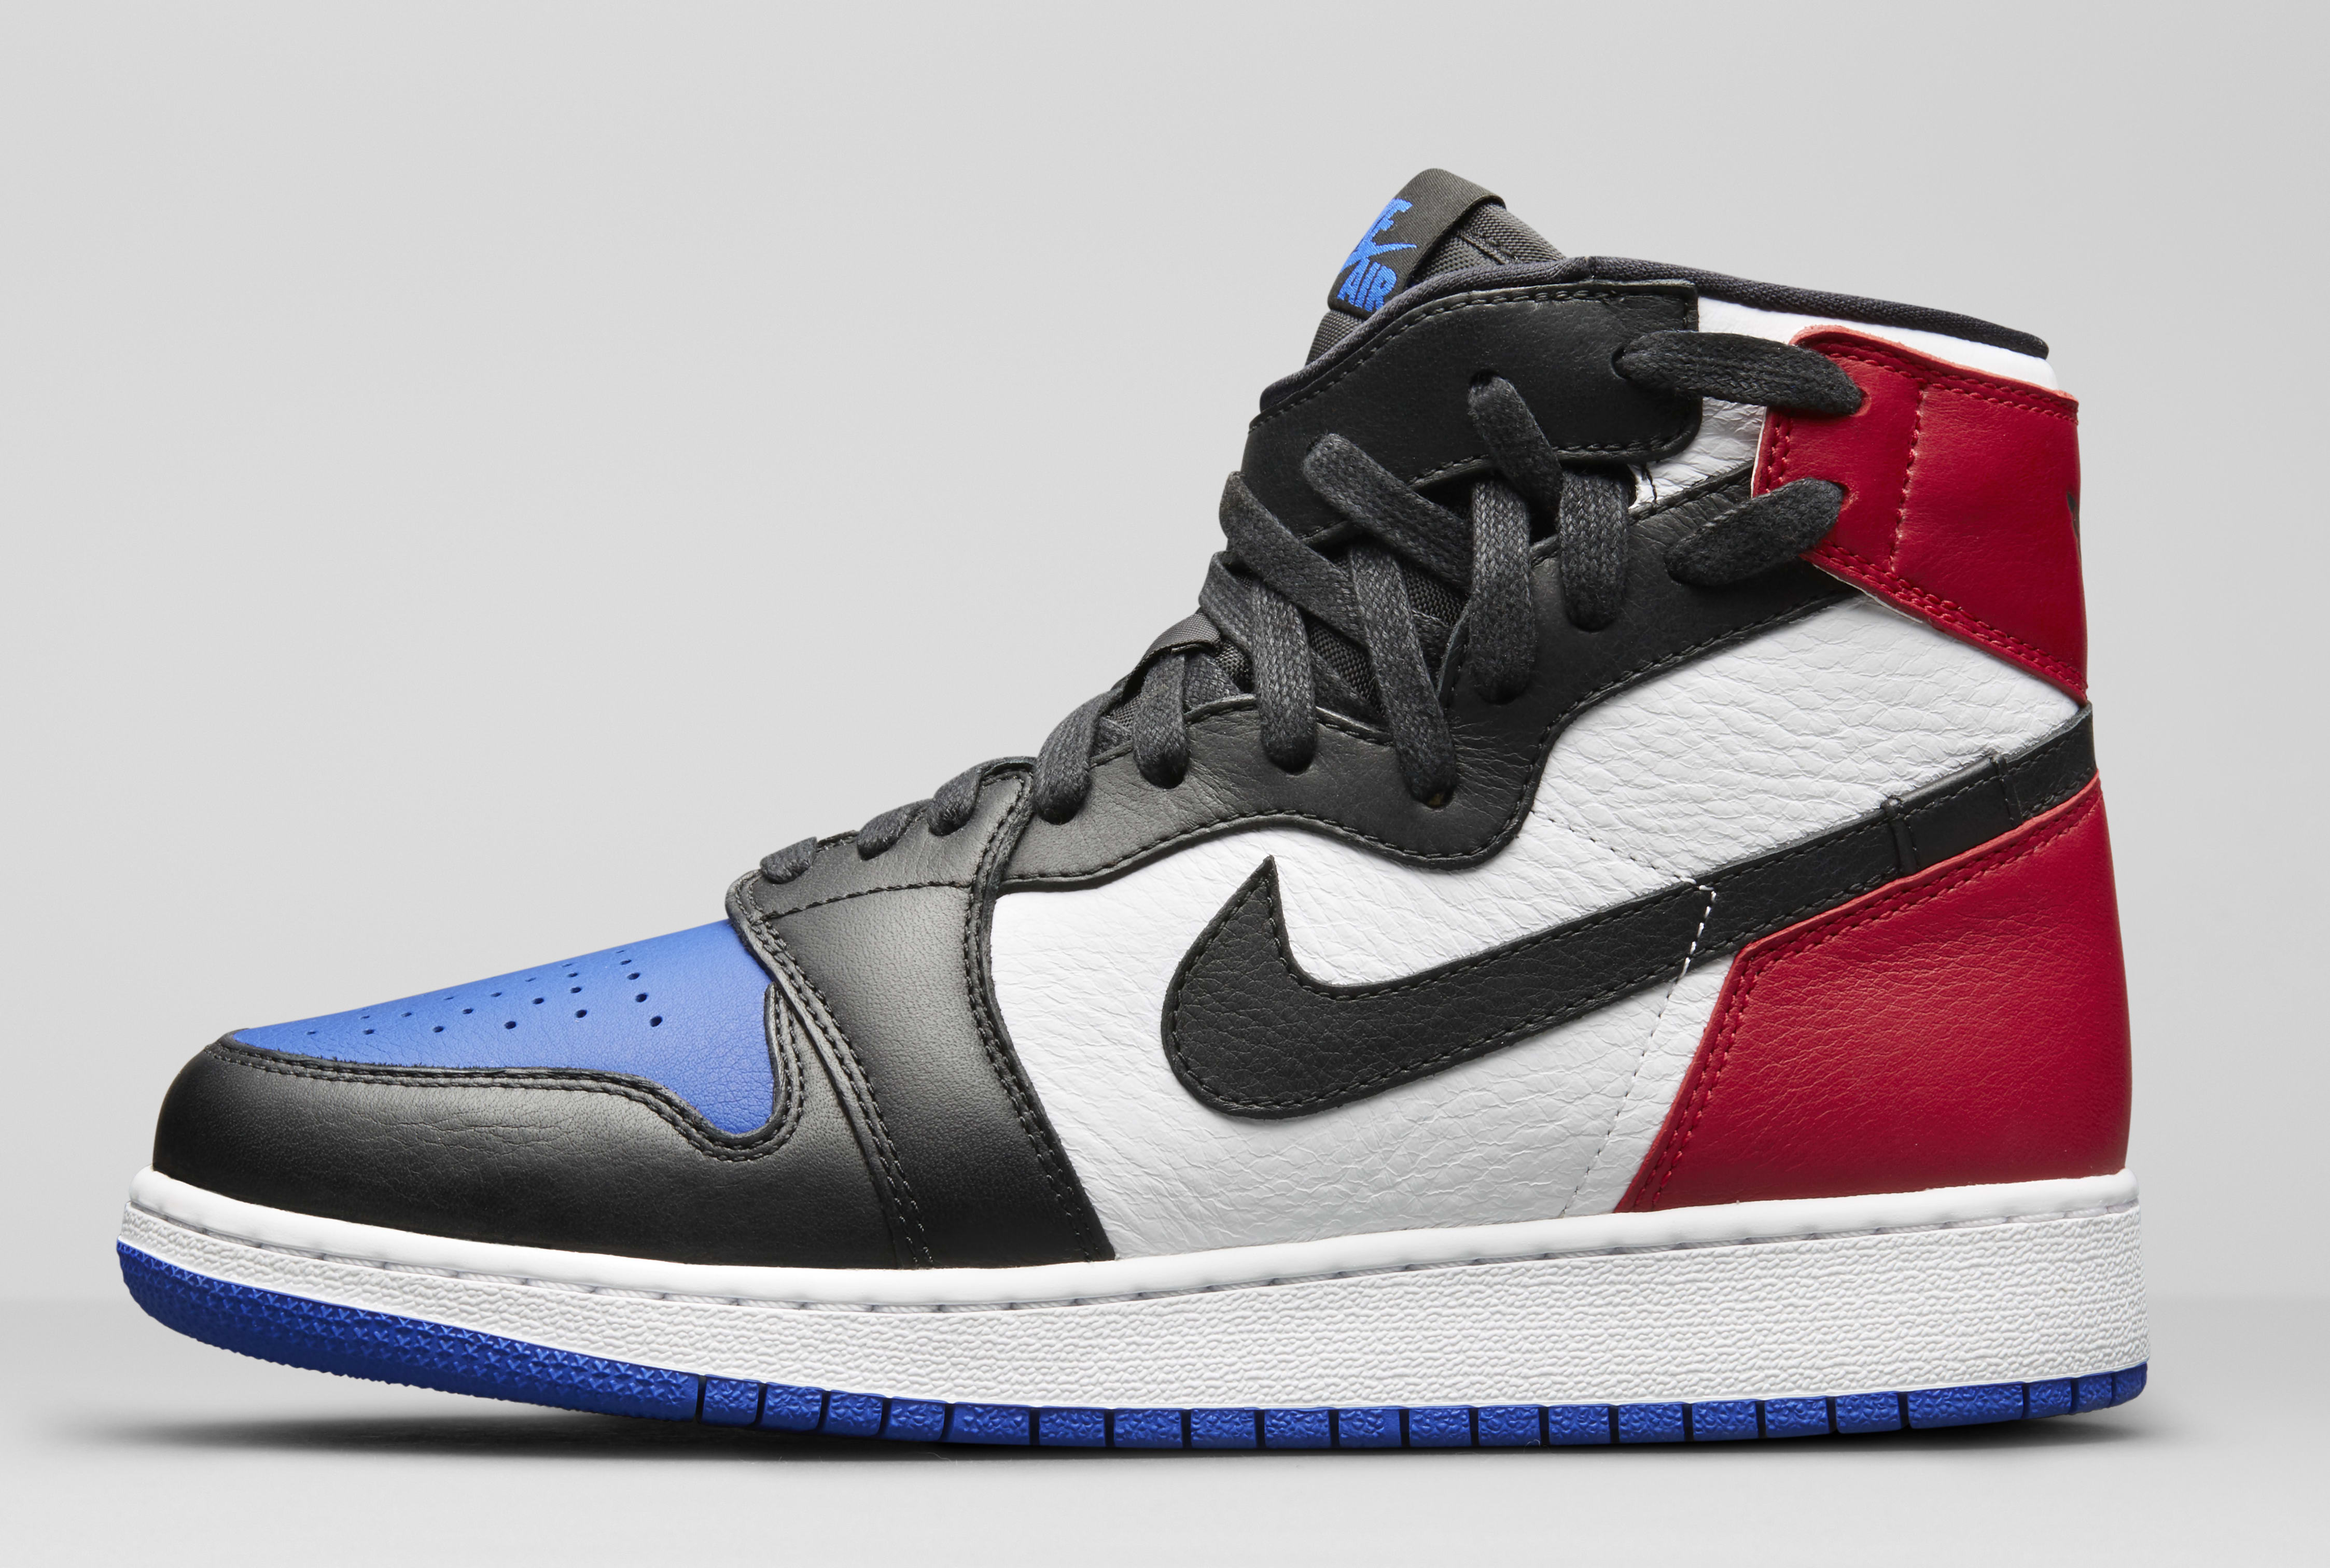 806055580f28 ... switzerland image via nike air jordan 1 rebel top 3 at4151 001 lateral  ddcc9 166d4